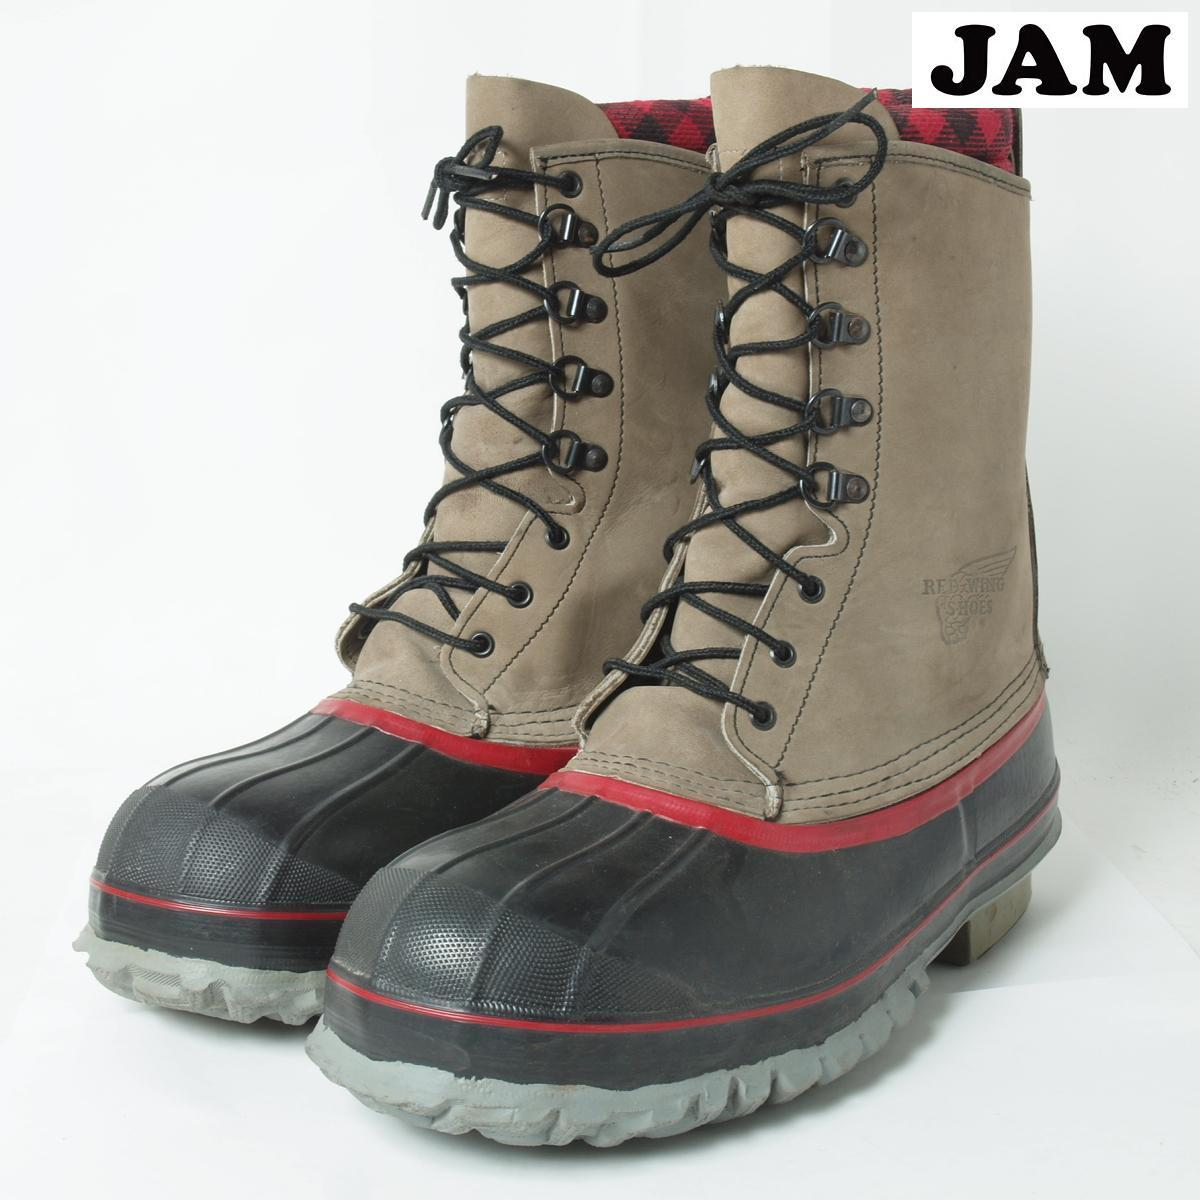 Red Wing Winter Boots eiyzMr97